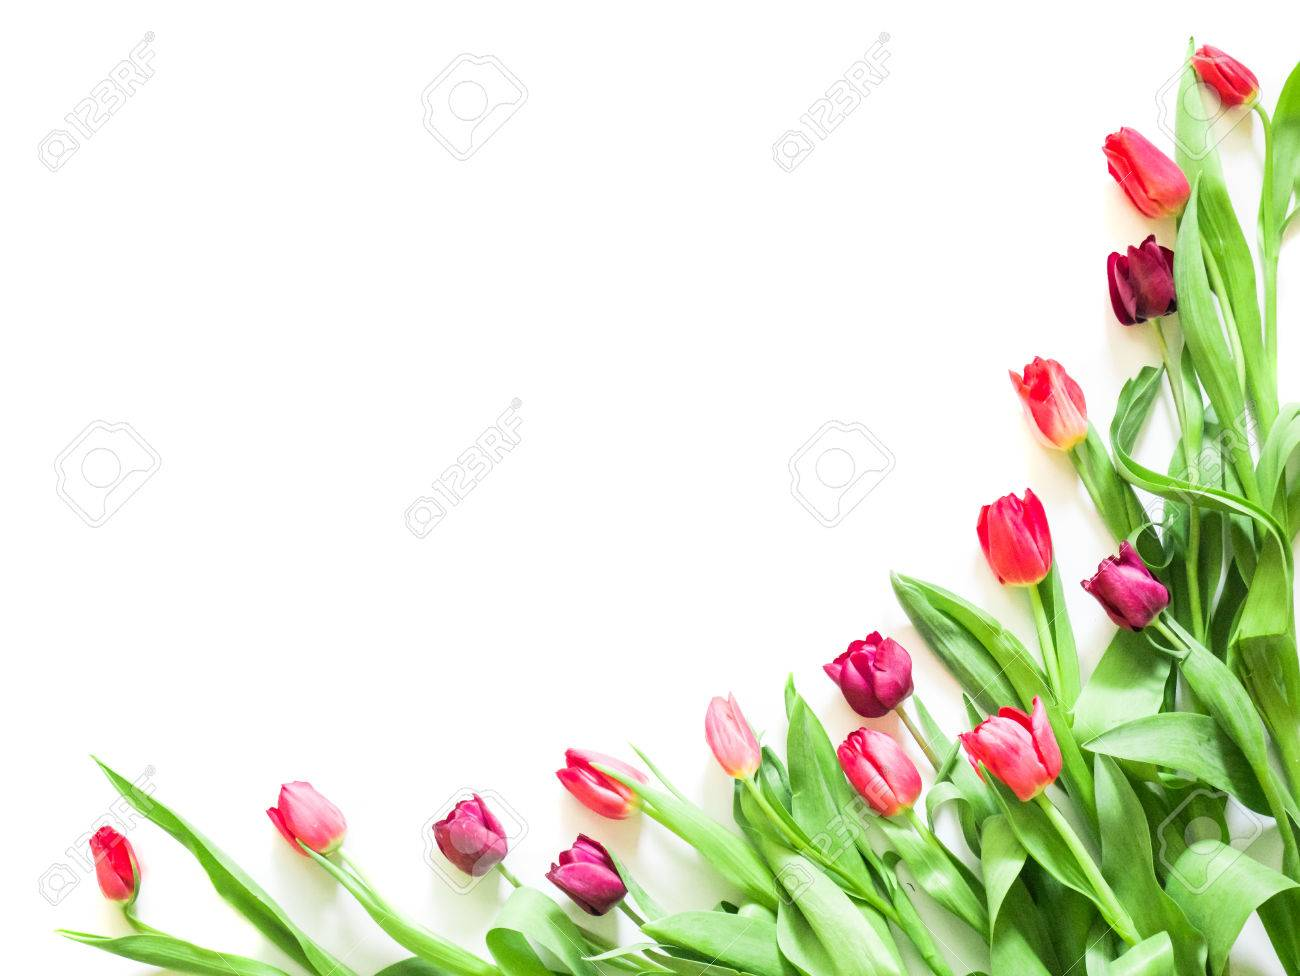 Present Card With Tulip Flowers Corners Template Stock Photo ...